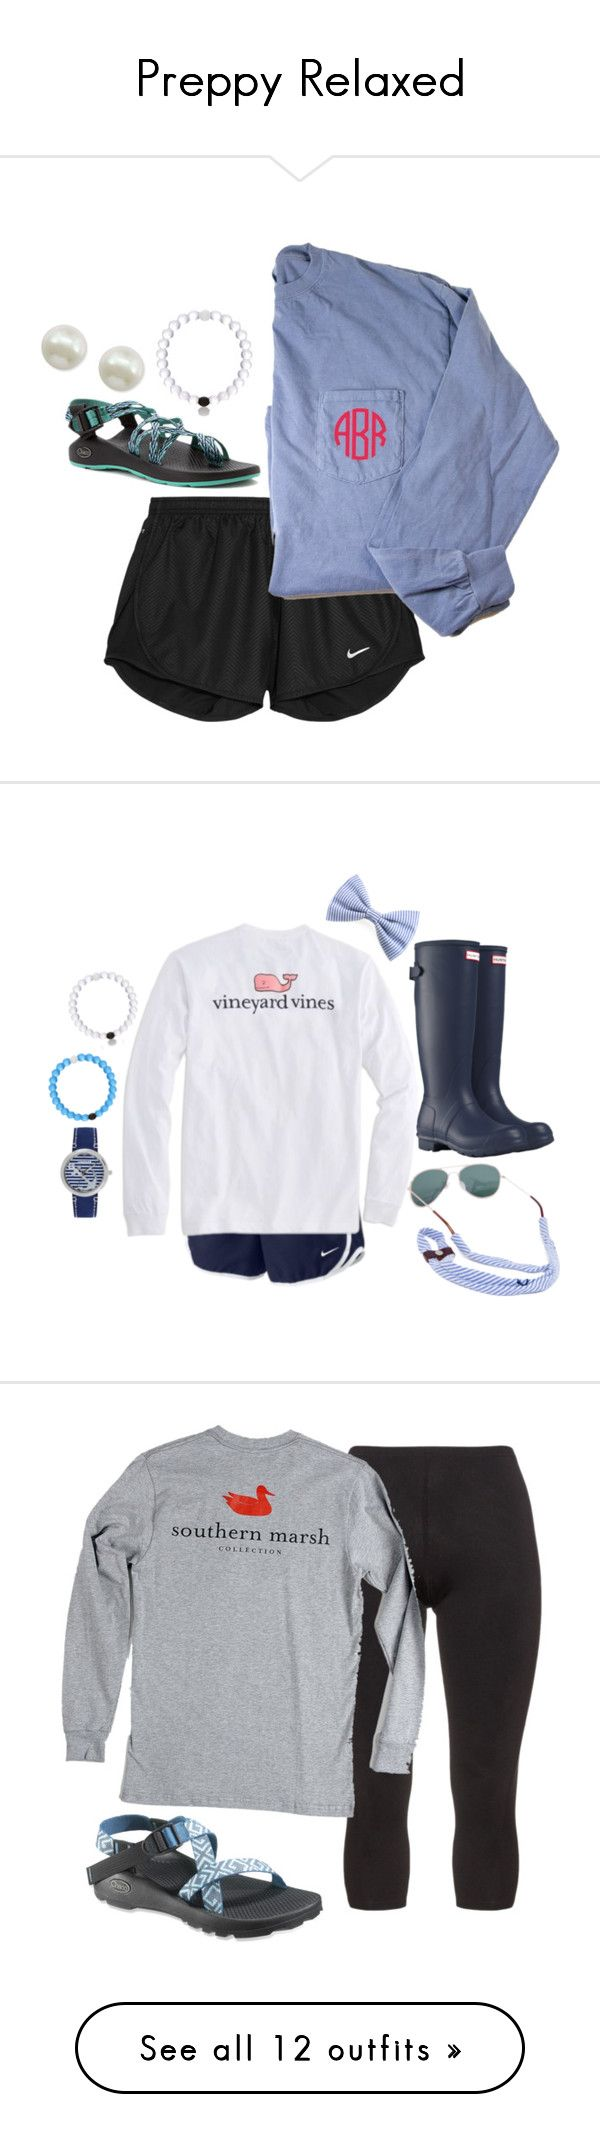 """Preppy Relaxed"" by camlinker ❤ liked on Polyvore featuring NIKE, Chaco, Majorica, Vineyard Vines, Hunter, Sperry Top-Sider, Manon Baptiste, camlinkeroriginal, Target and Lilly Pulitzer"